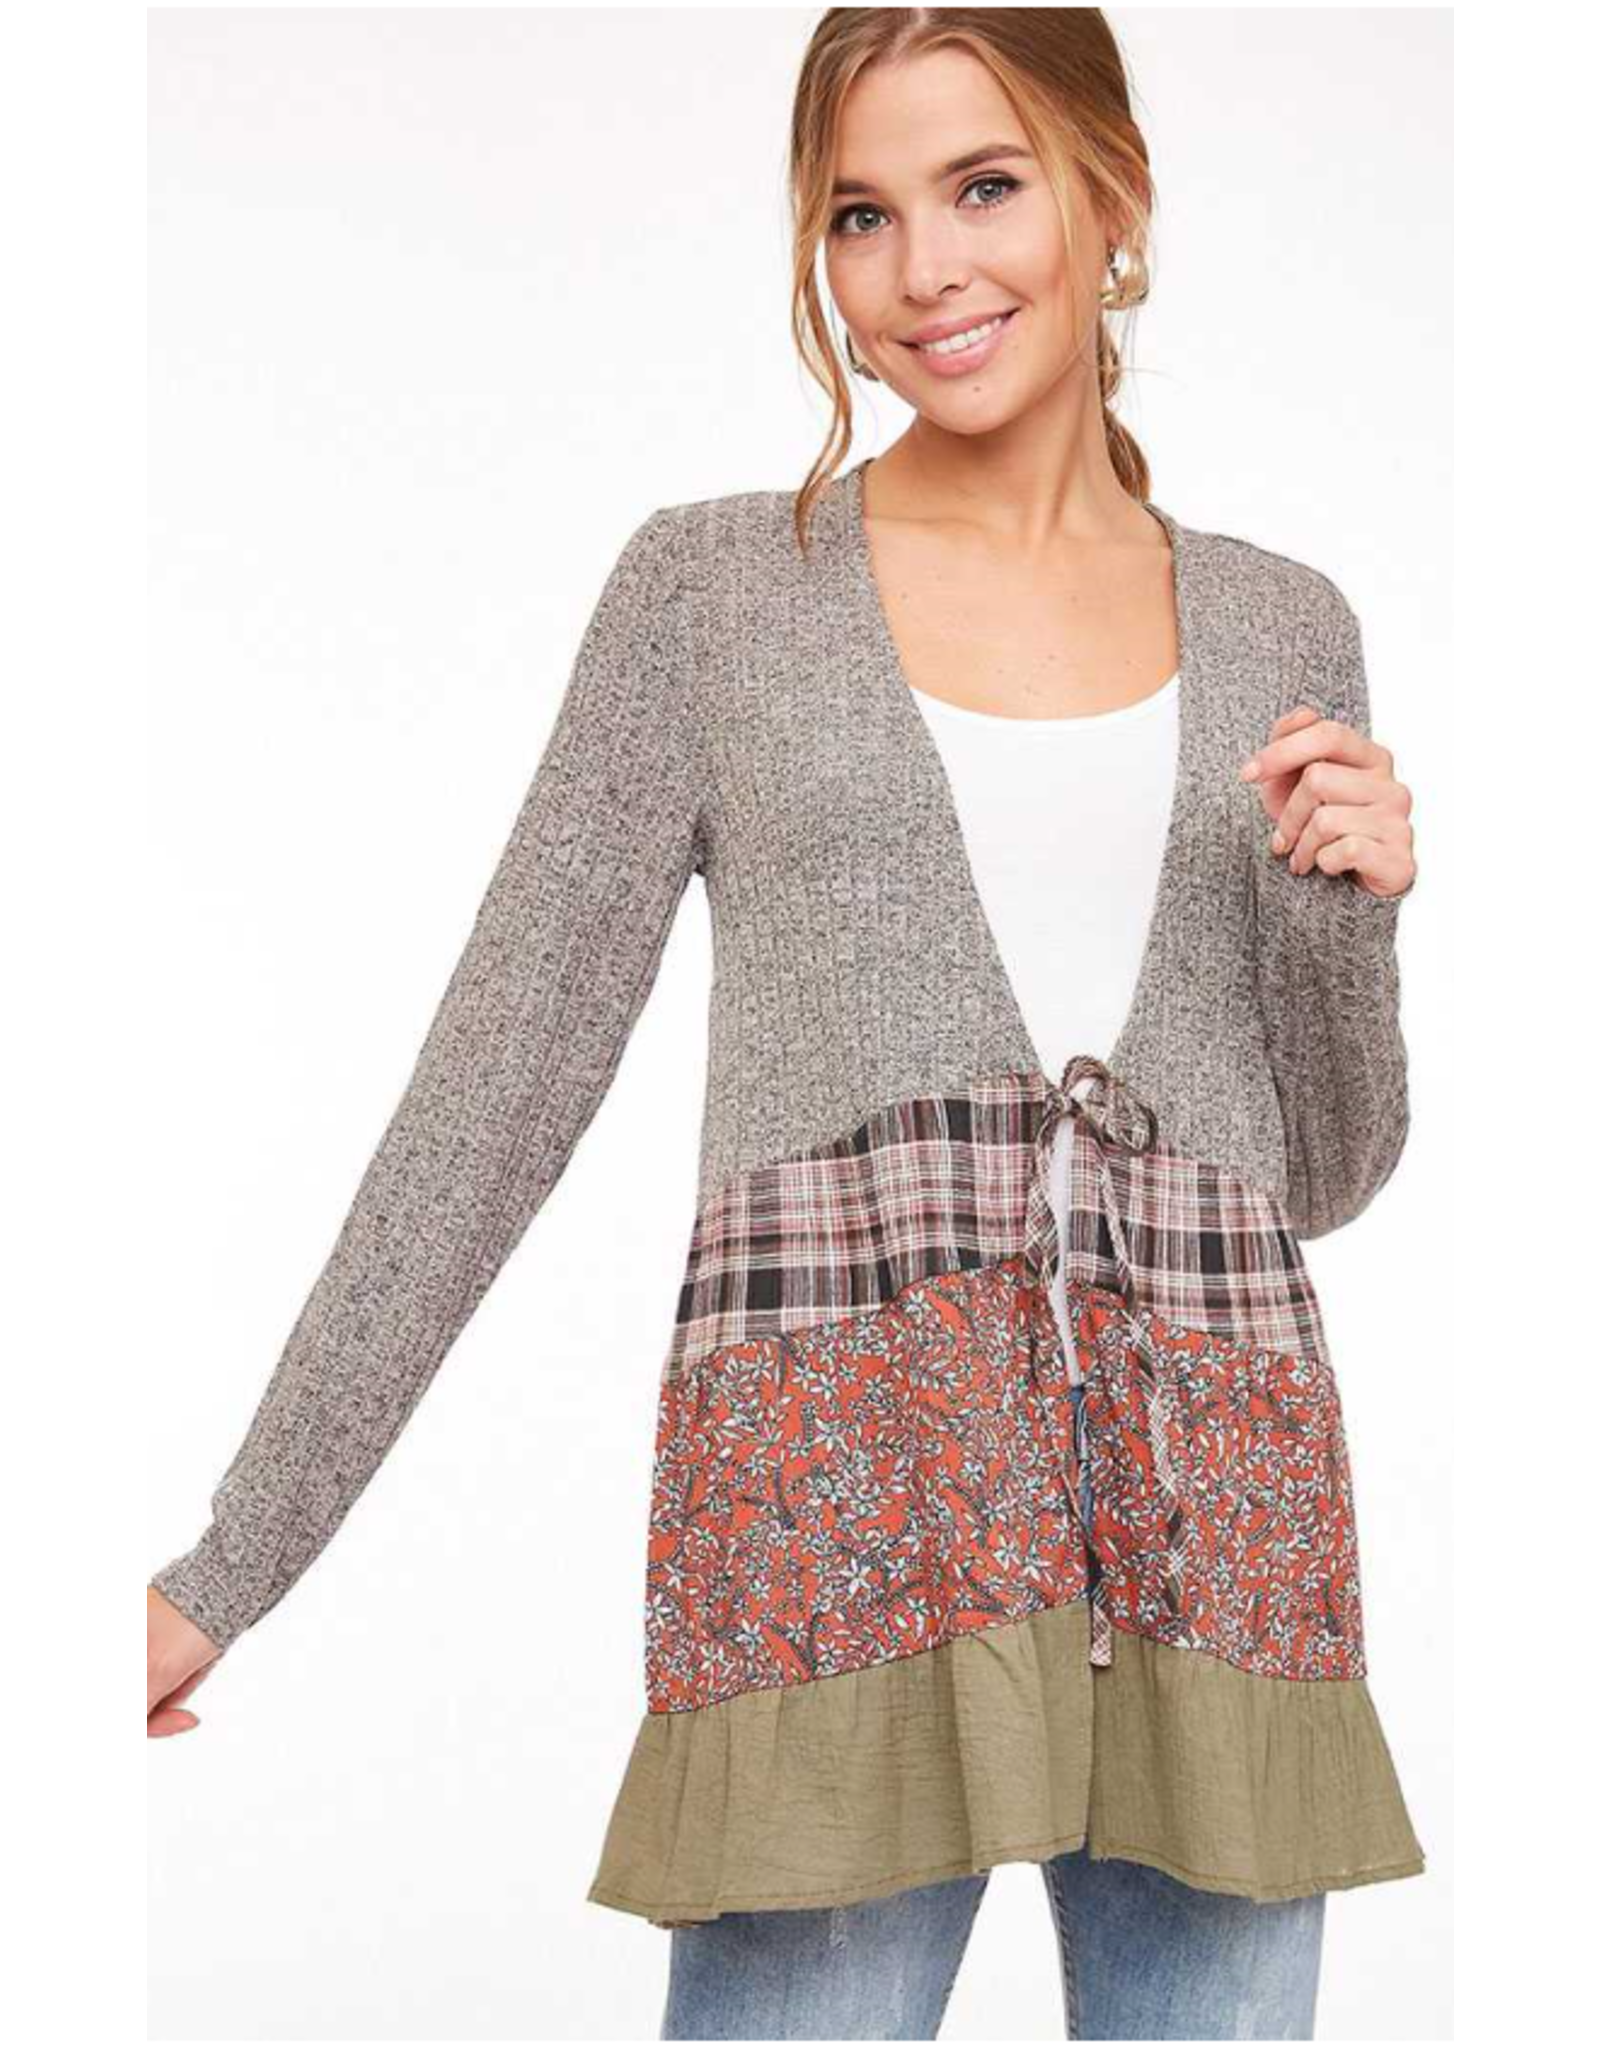 Callie - Front tie cardigan with patchwork ruffle hem (multiple colours)